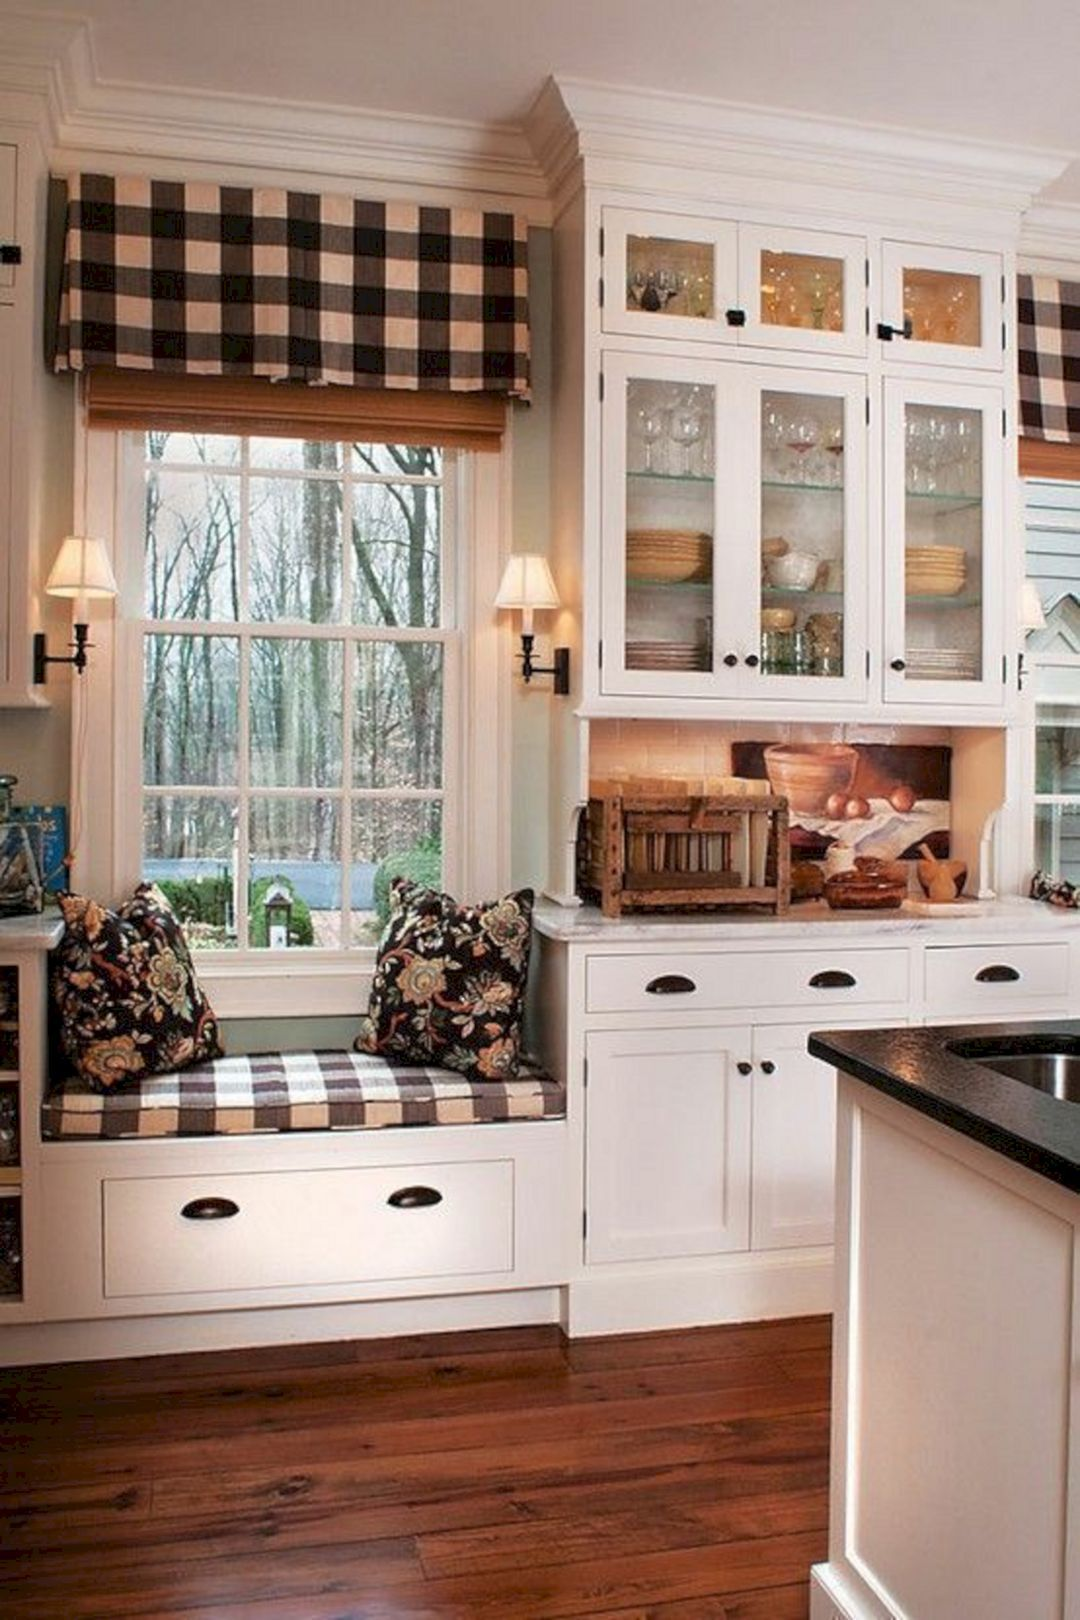 Farmhouse Country Kitchen Designs: Awesome Farmhouse Kitchen Design Ideas (75+ Pictures